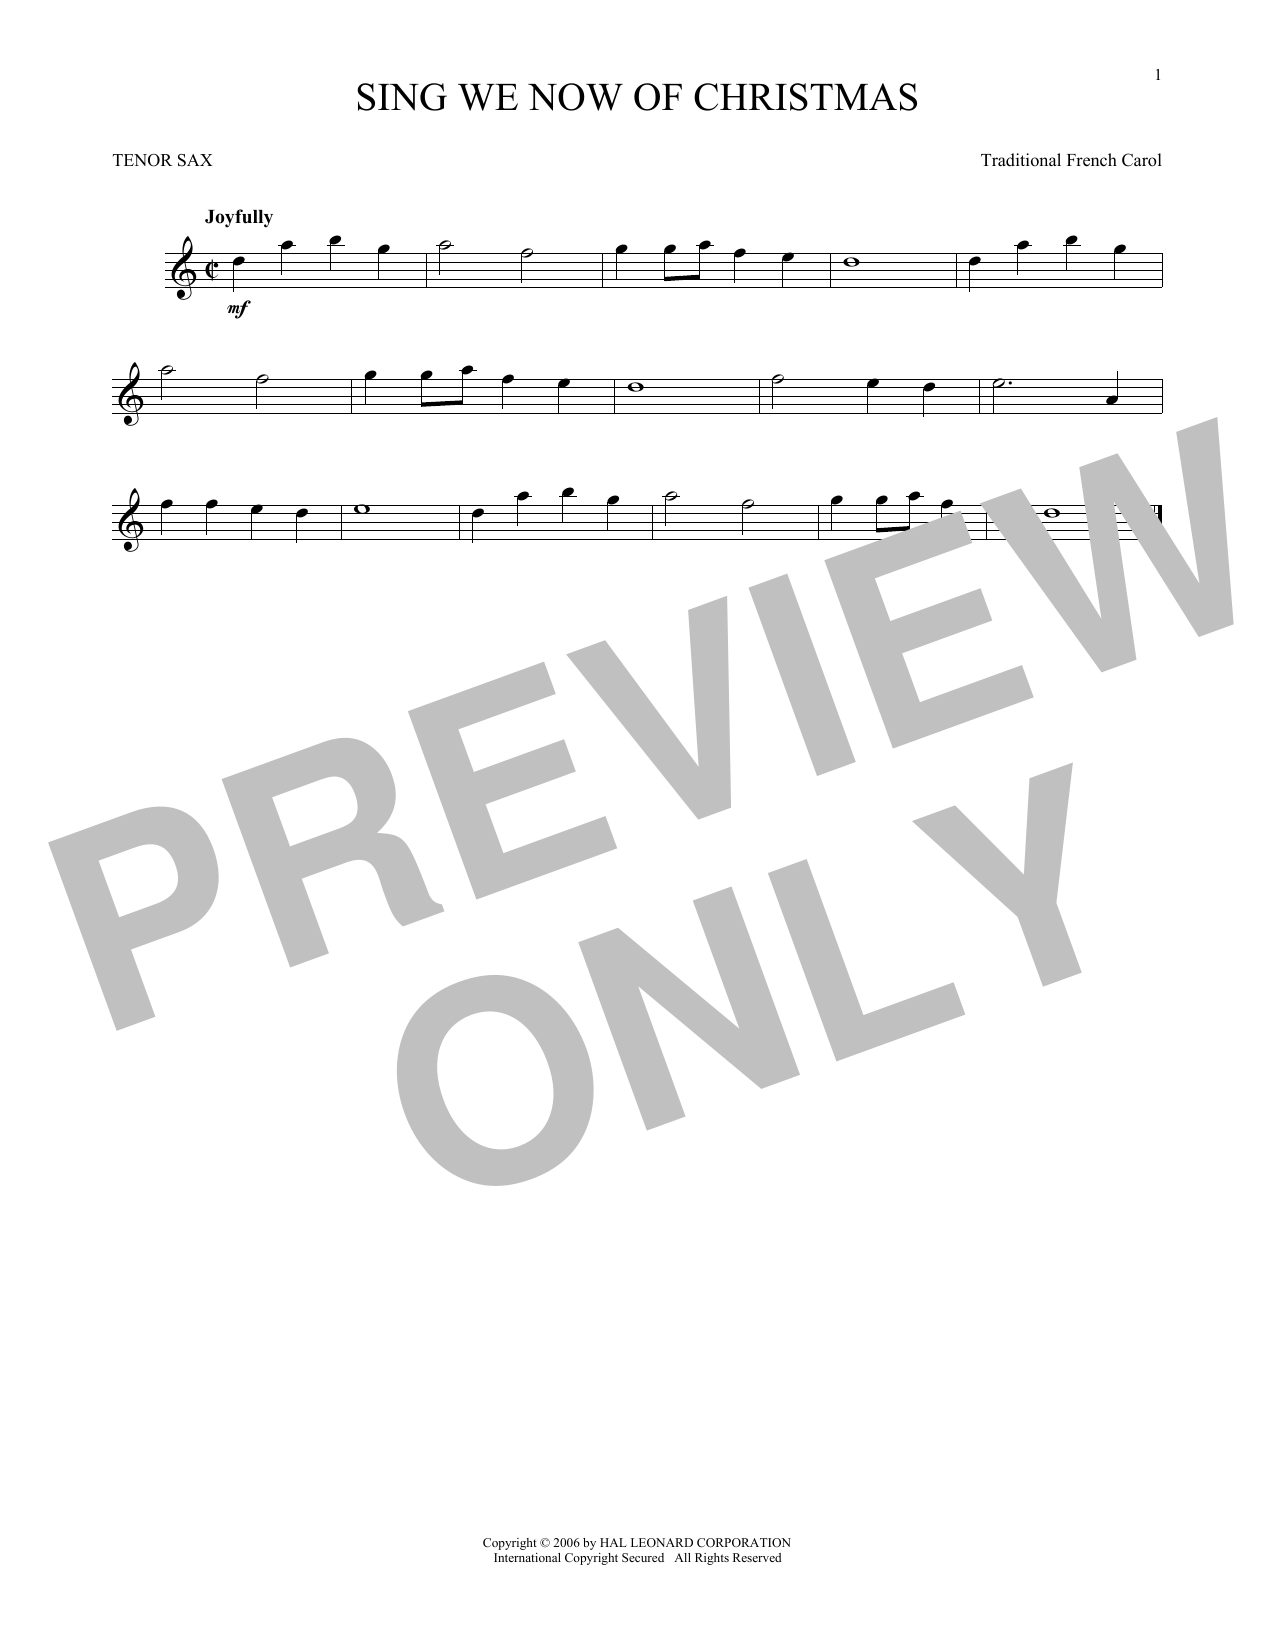 Sing We Now Of Christmas Sheet Music by Traditional French Carol ...